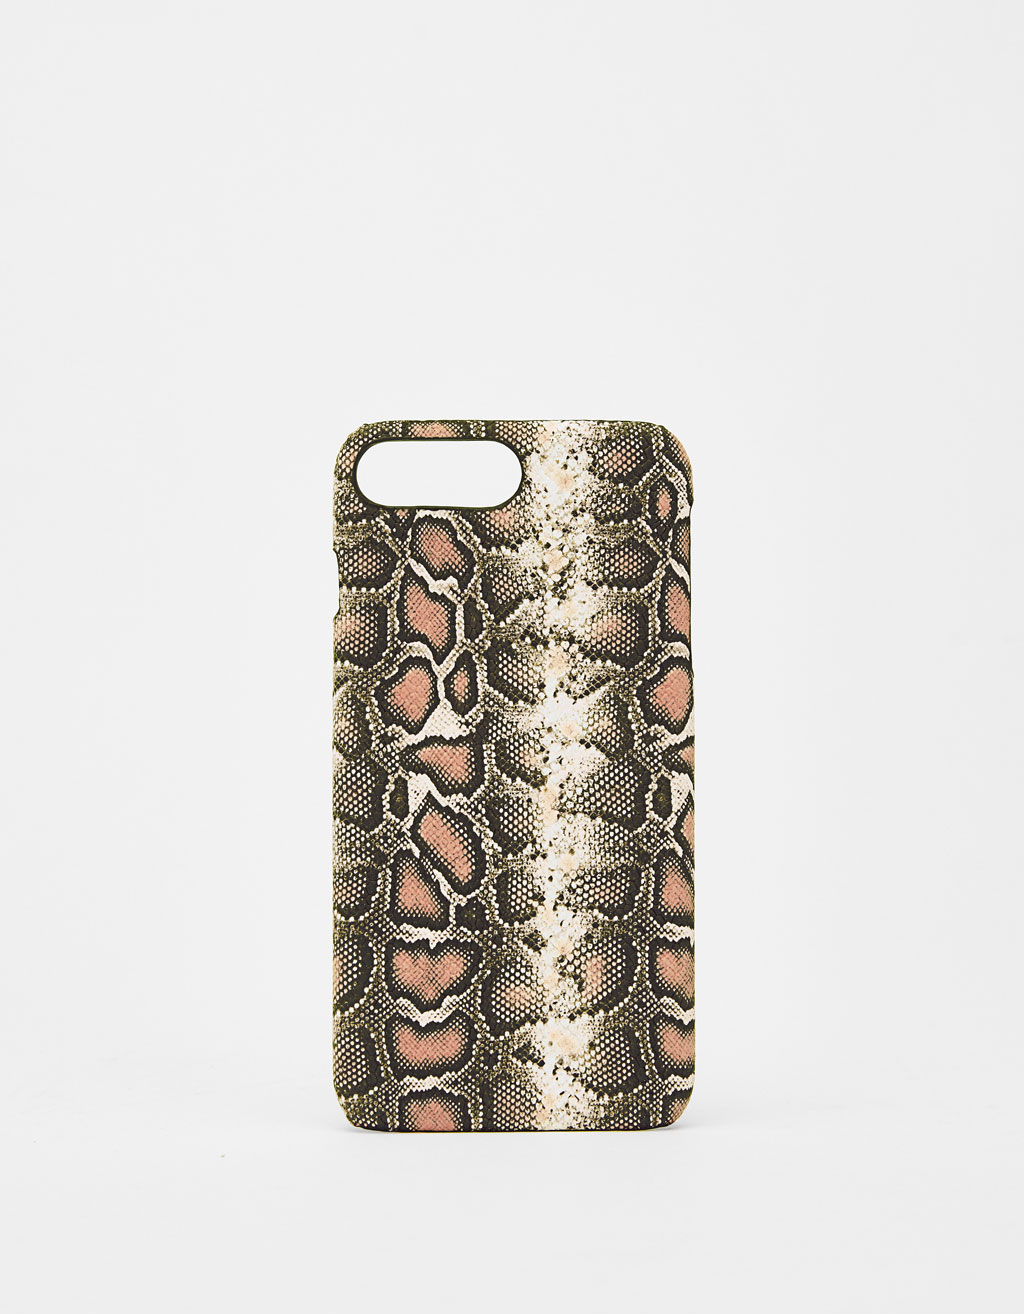 Carcasa de serpiente iPhone 6 plus/7 plus/8 plus